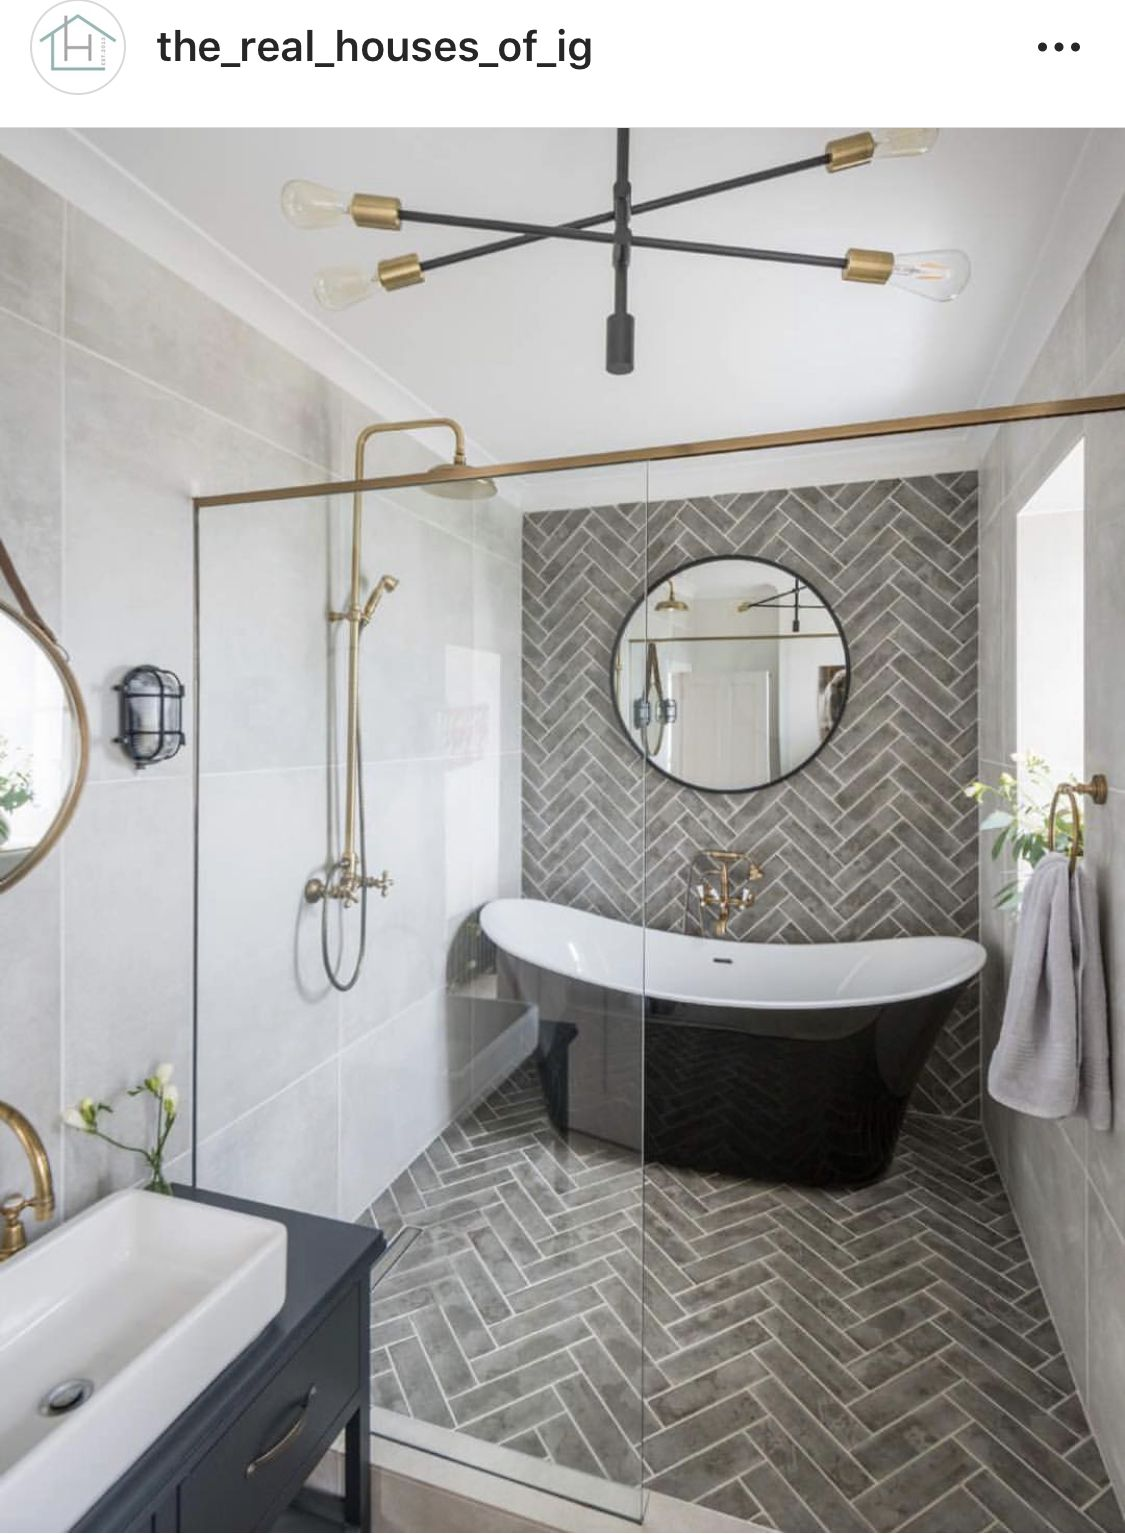 I M A Huge Fan Of This Layout When You Don T Have Enough Room In Your Bathroom To Put A T Master Bathroom Renovation Bathroom Interior Design Bathroom Interior